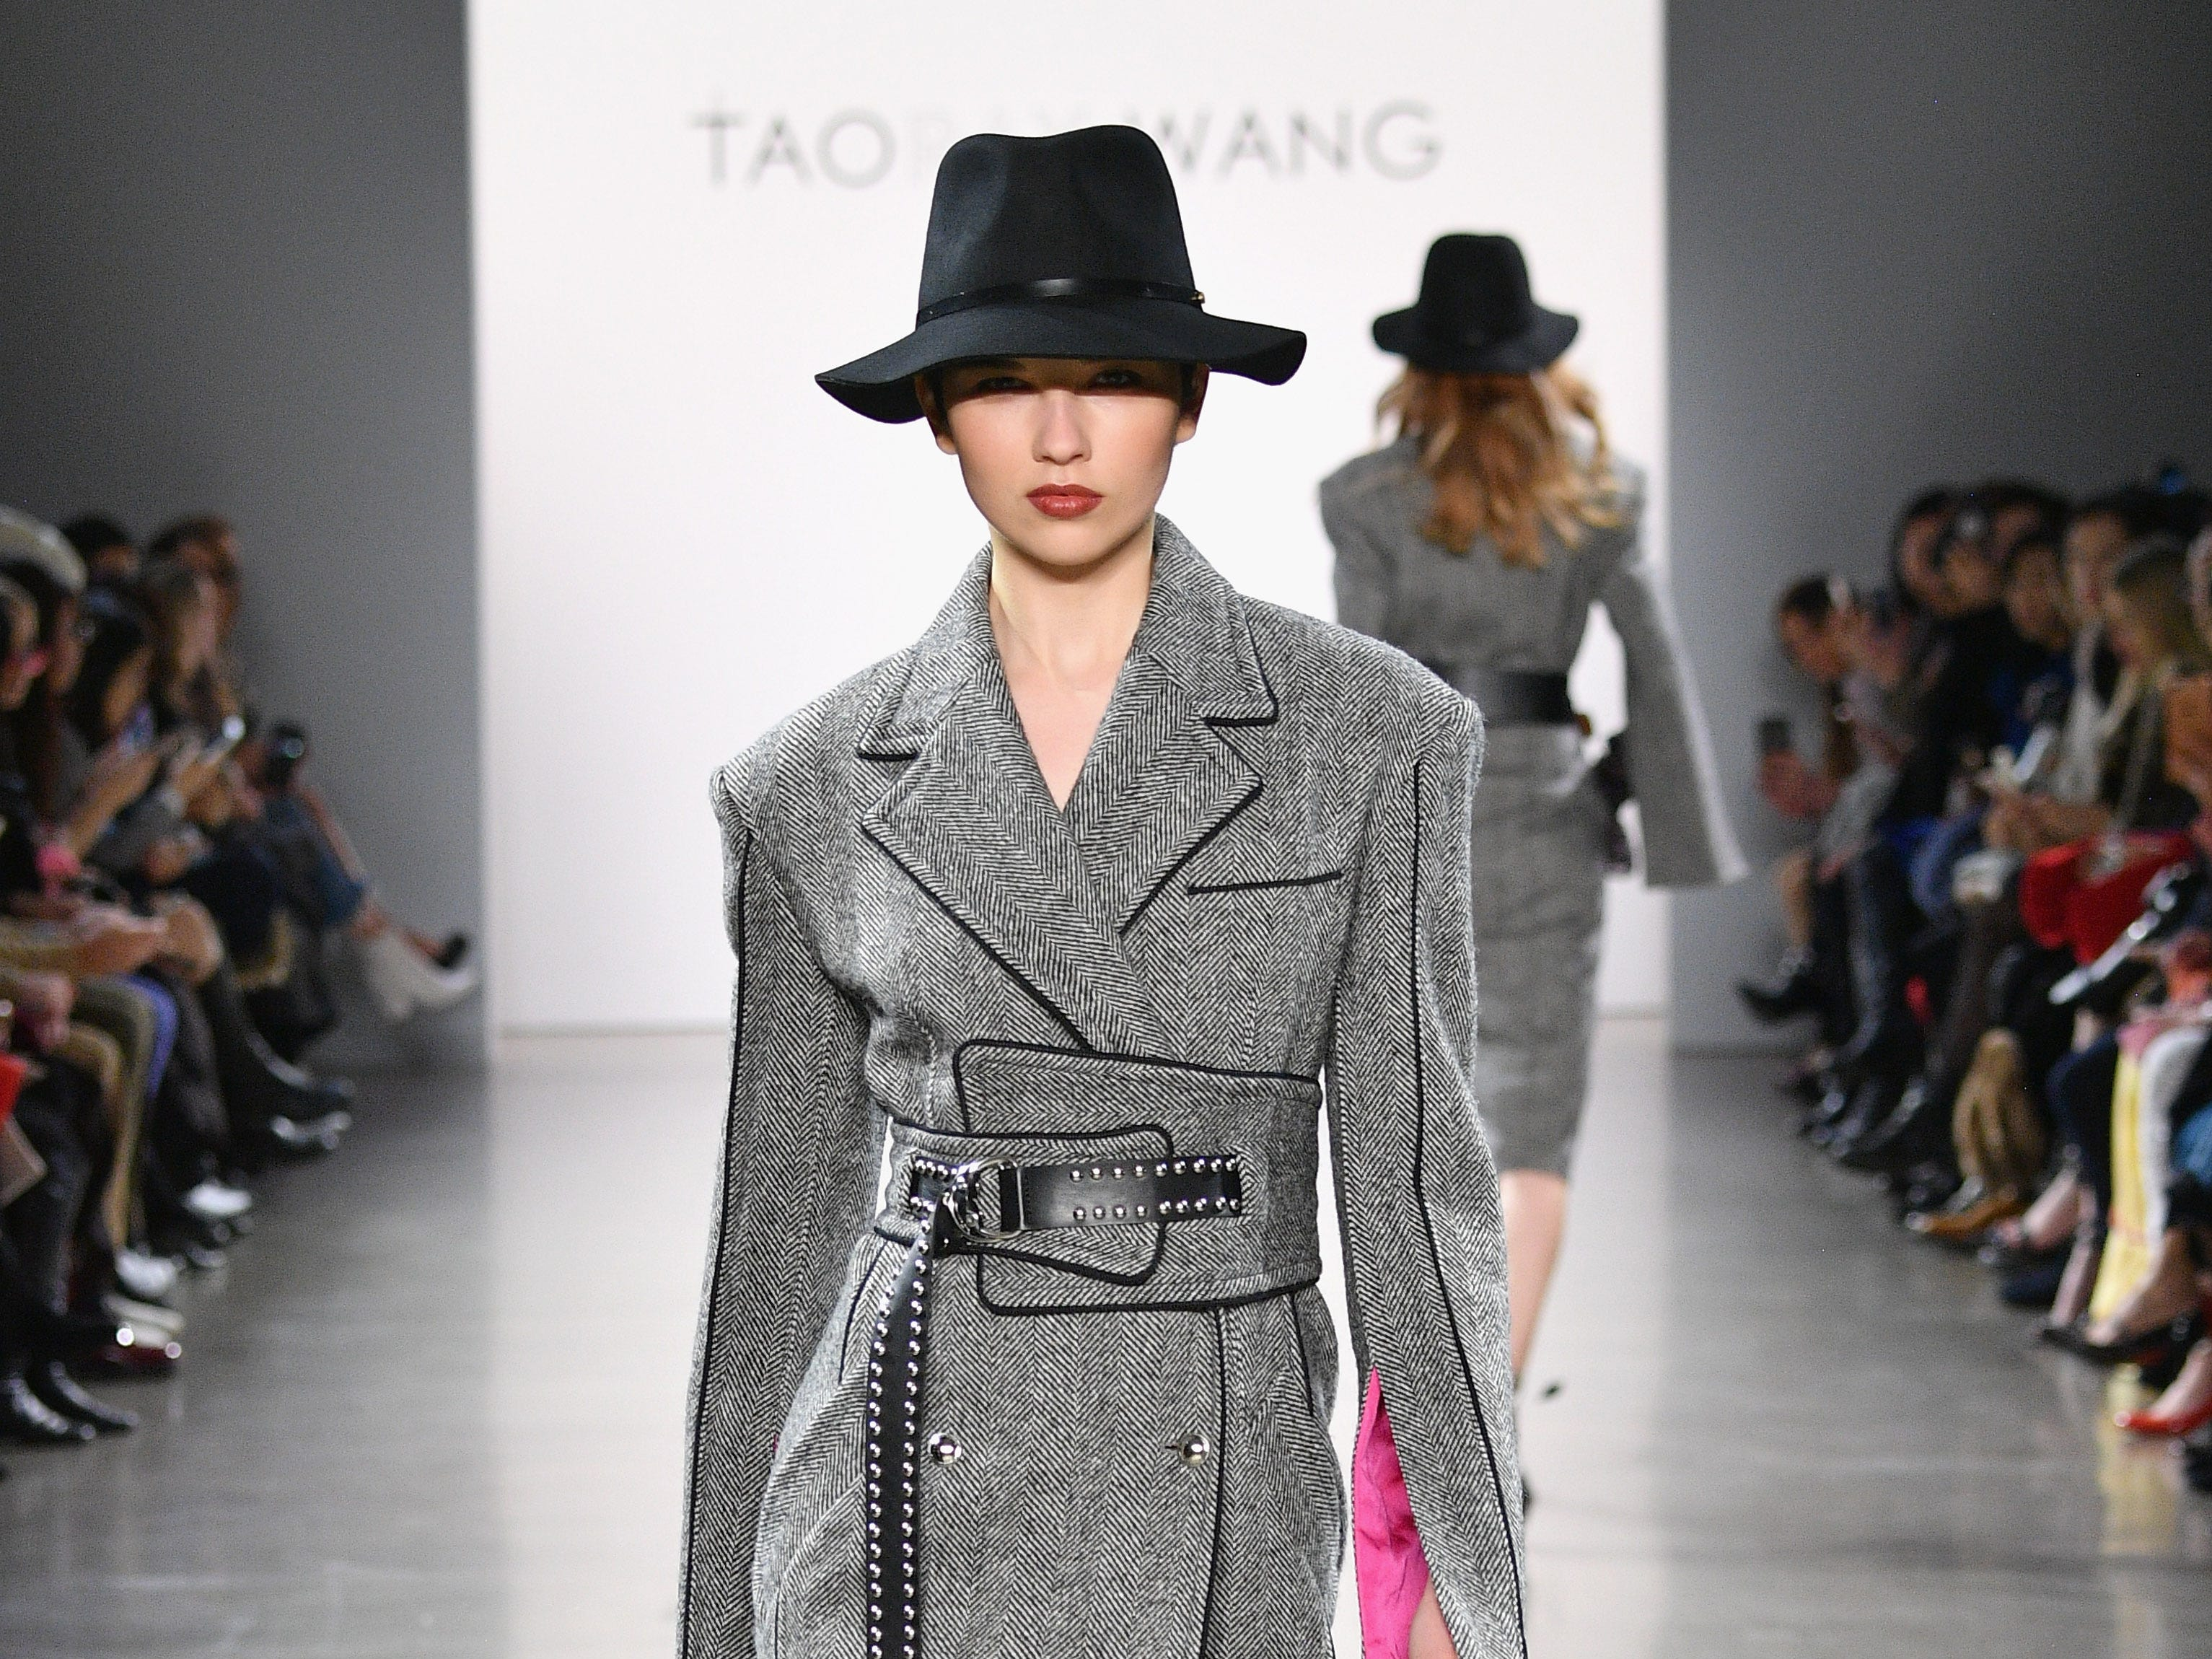 NEW YORK, NY - FEBRUARY 09:  A model walks the runway for the Taoray Wang fashion show during New York Fashion Week: The Shows at Gallery II at Spring Studios on February 9, 2019 in New York City.  (Photo by Dia Dipasupil/Getty Images for Taoray Wang) ORG XMIT: 775290801 ORIG FILE ID: 1096566414